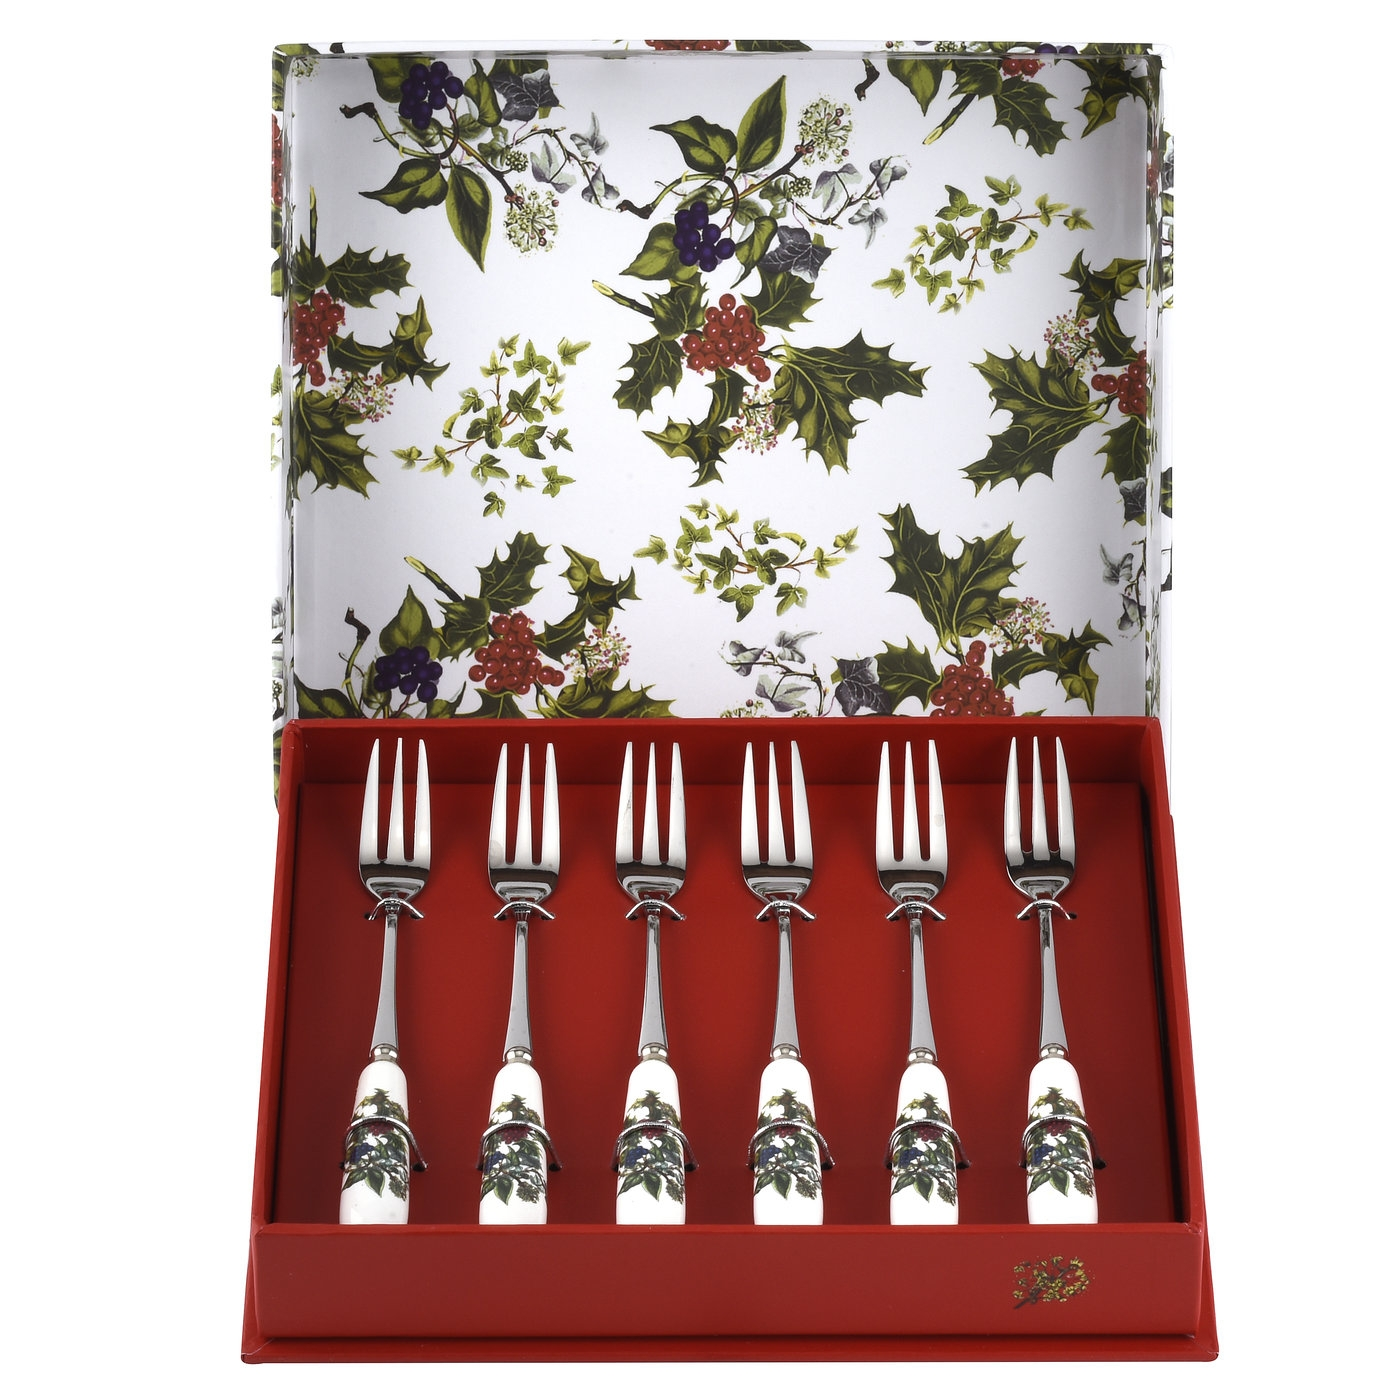 Portmeirion The Holly and The Ivy Set of 6 Pastry Forks image number 0